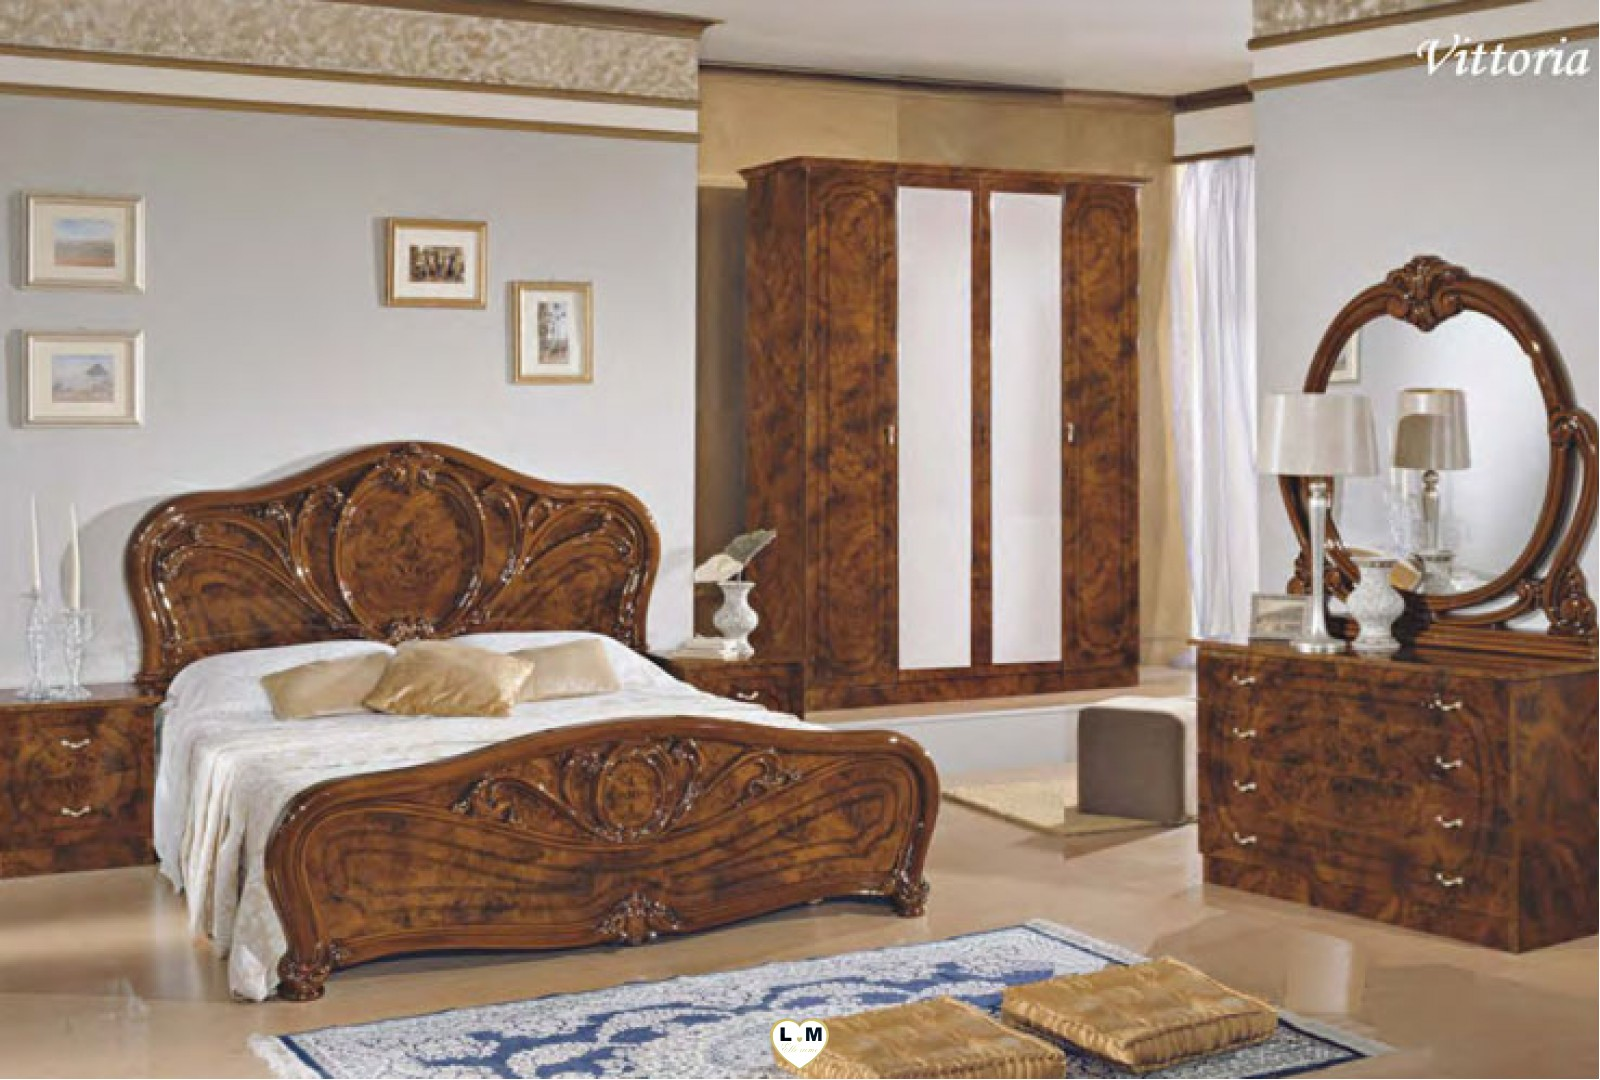 vittoria 4 portes laque noyer nuage ensemble chambre a. Black Bedroom Furniture Sets. Home Design Ideas